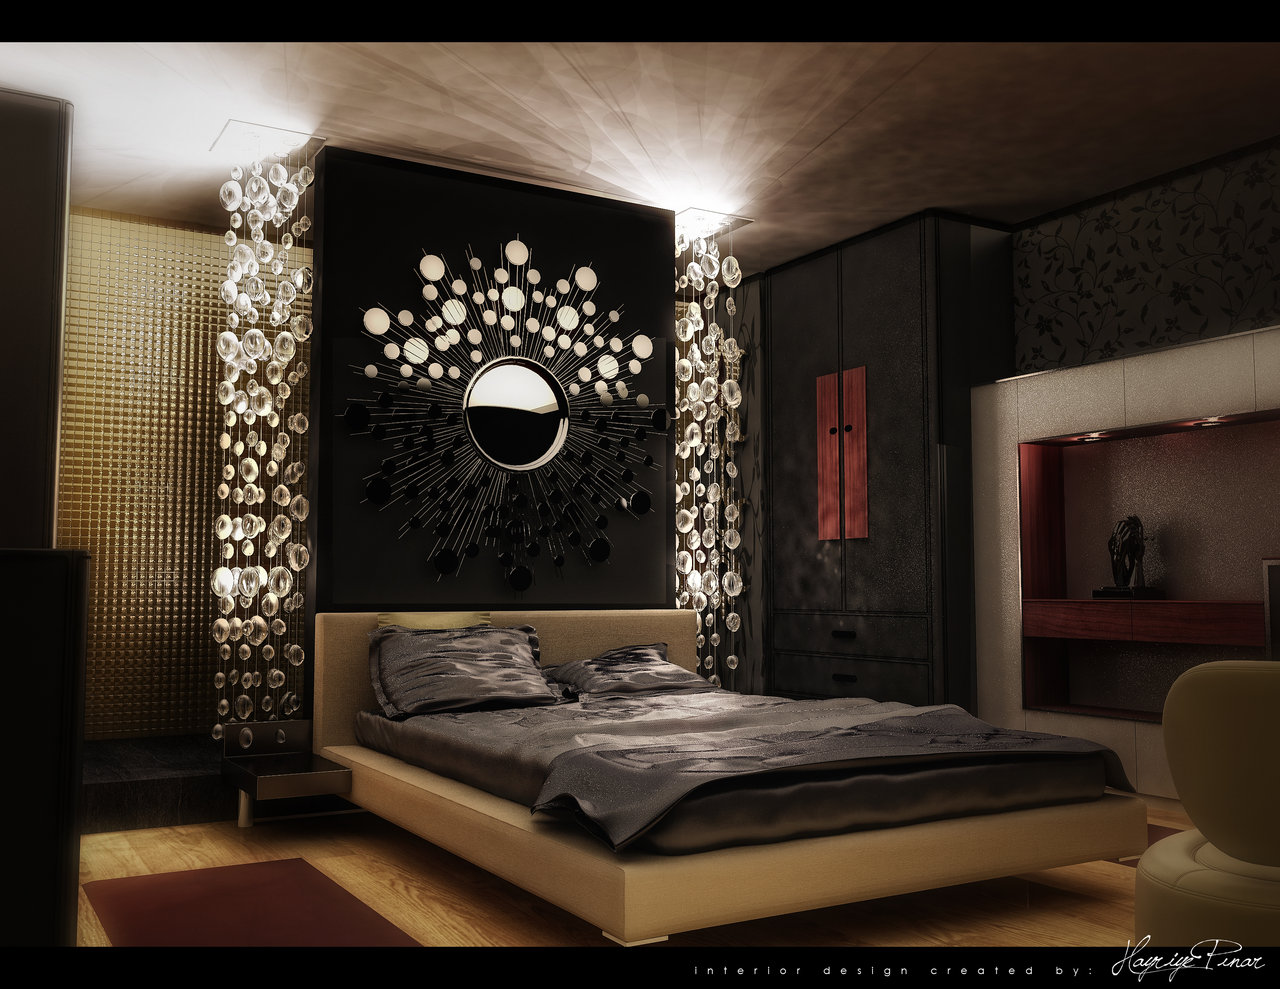 Modern Bedroom Interior Designs Simple And Minimalist Bedroom Interior Design Ideas Looks Charming